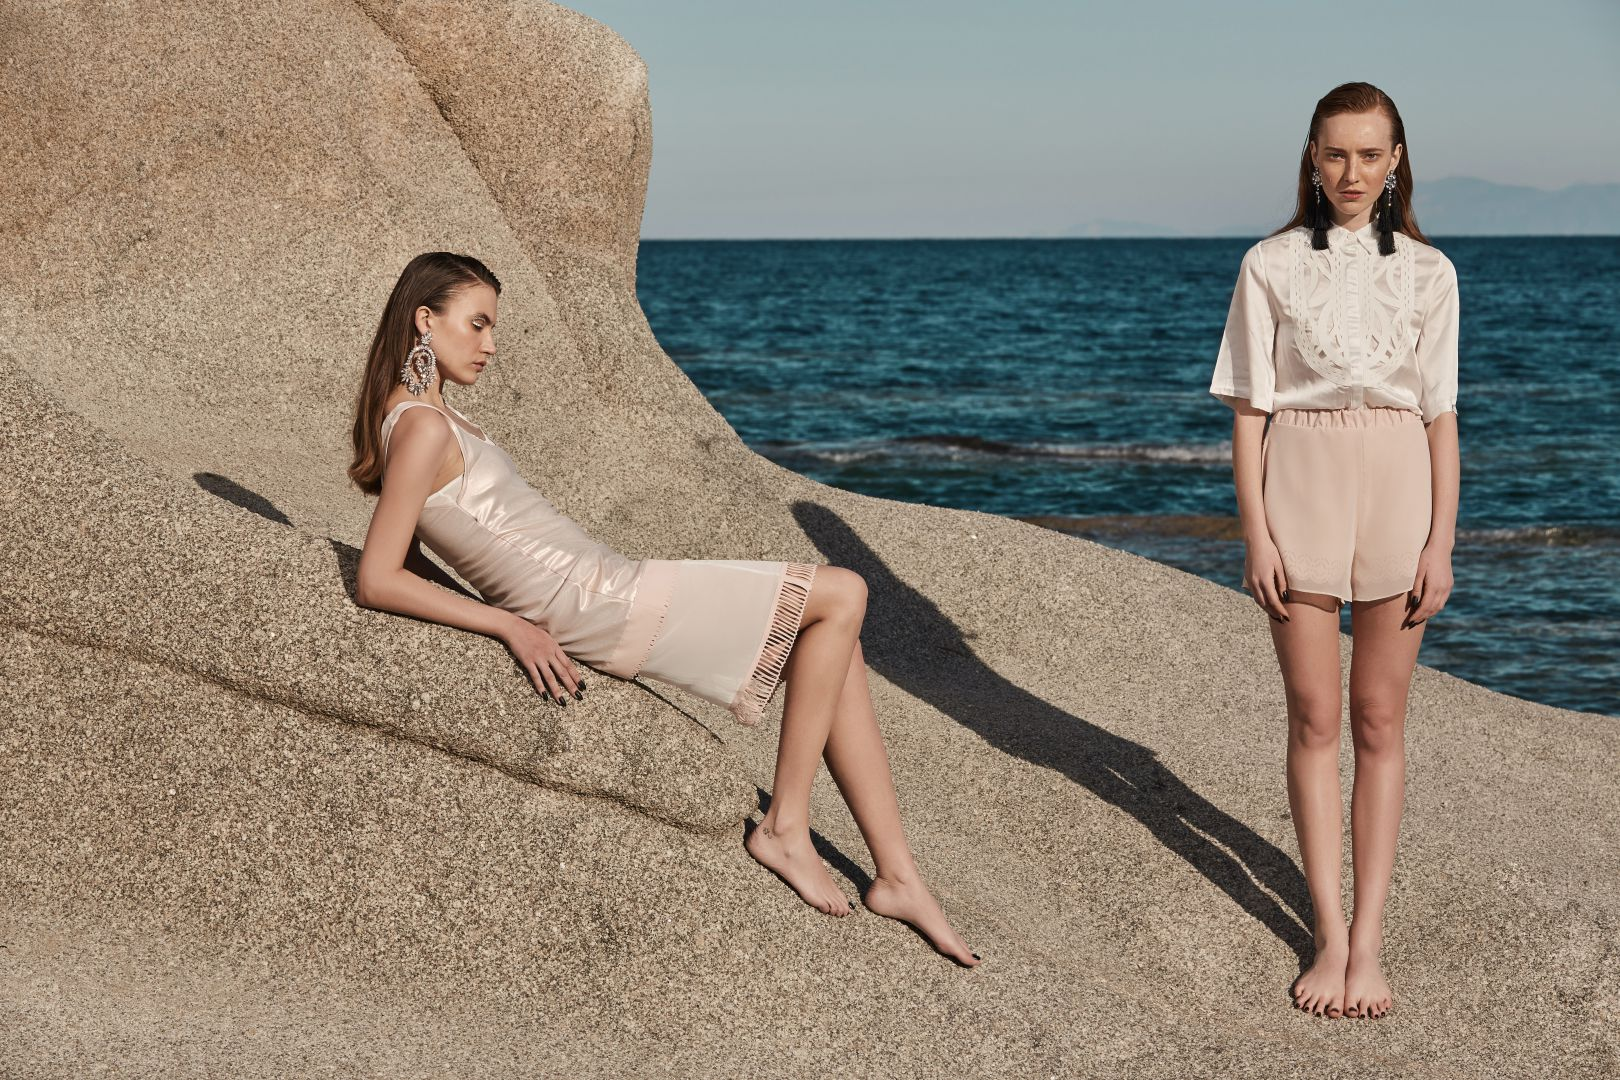 April & Karyna for CutCuutur campaign